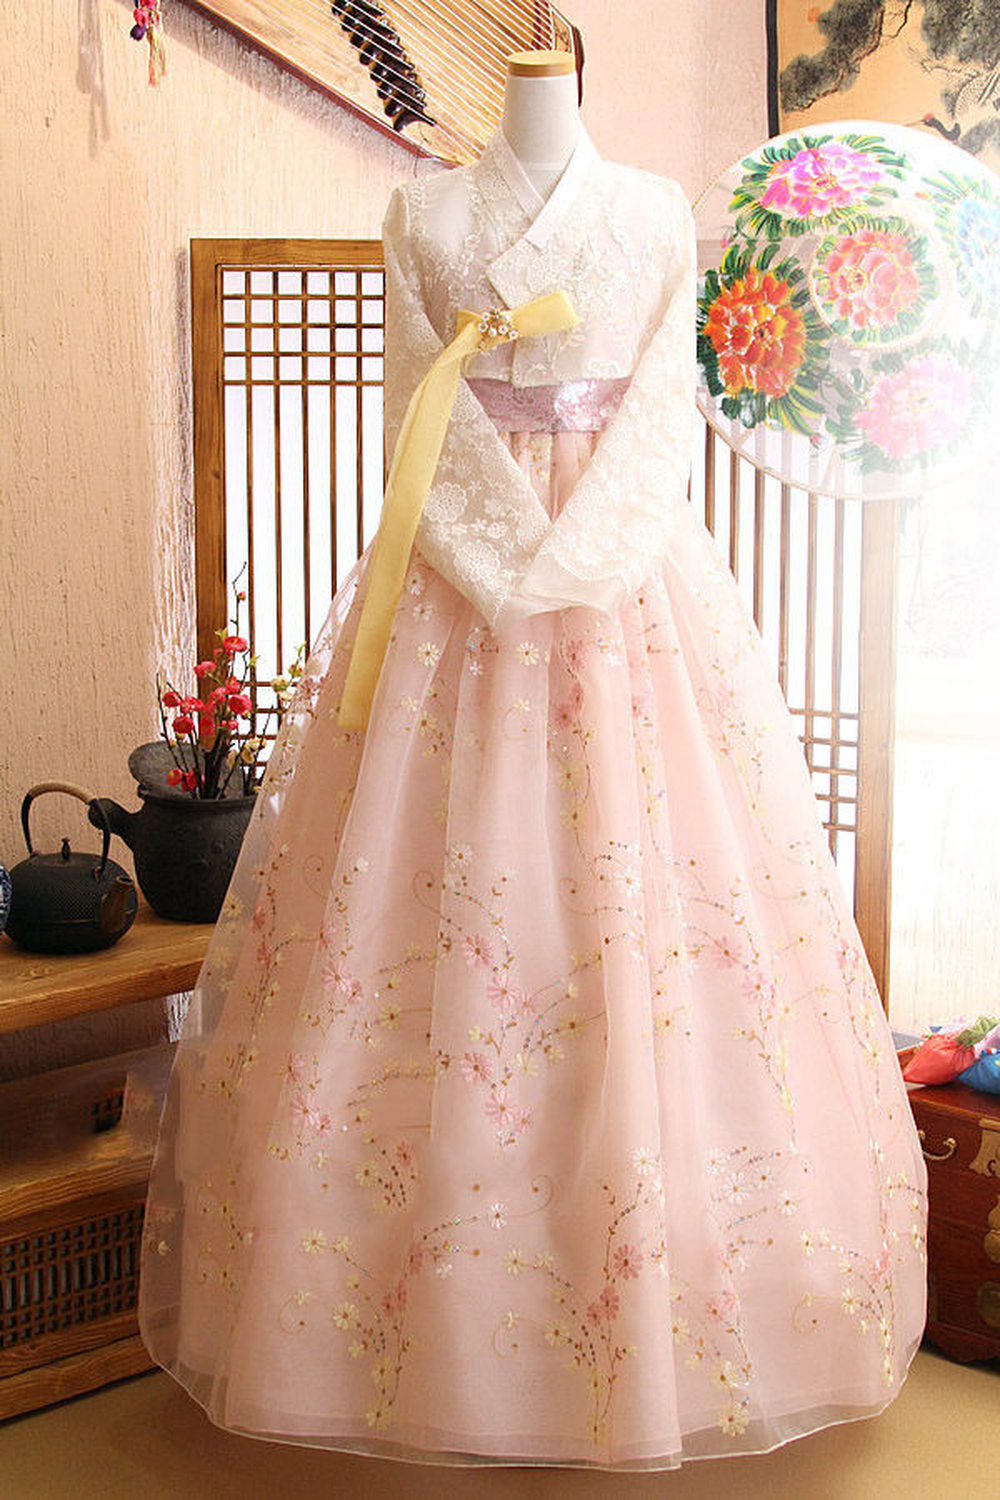 2019 Popular Women Hanbok Dress Korean Traditioanl Bride Wedding Fushion Lace Skirt Gfit